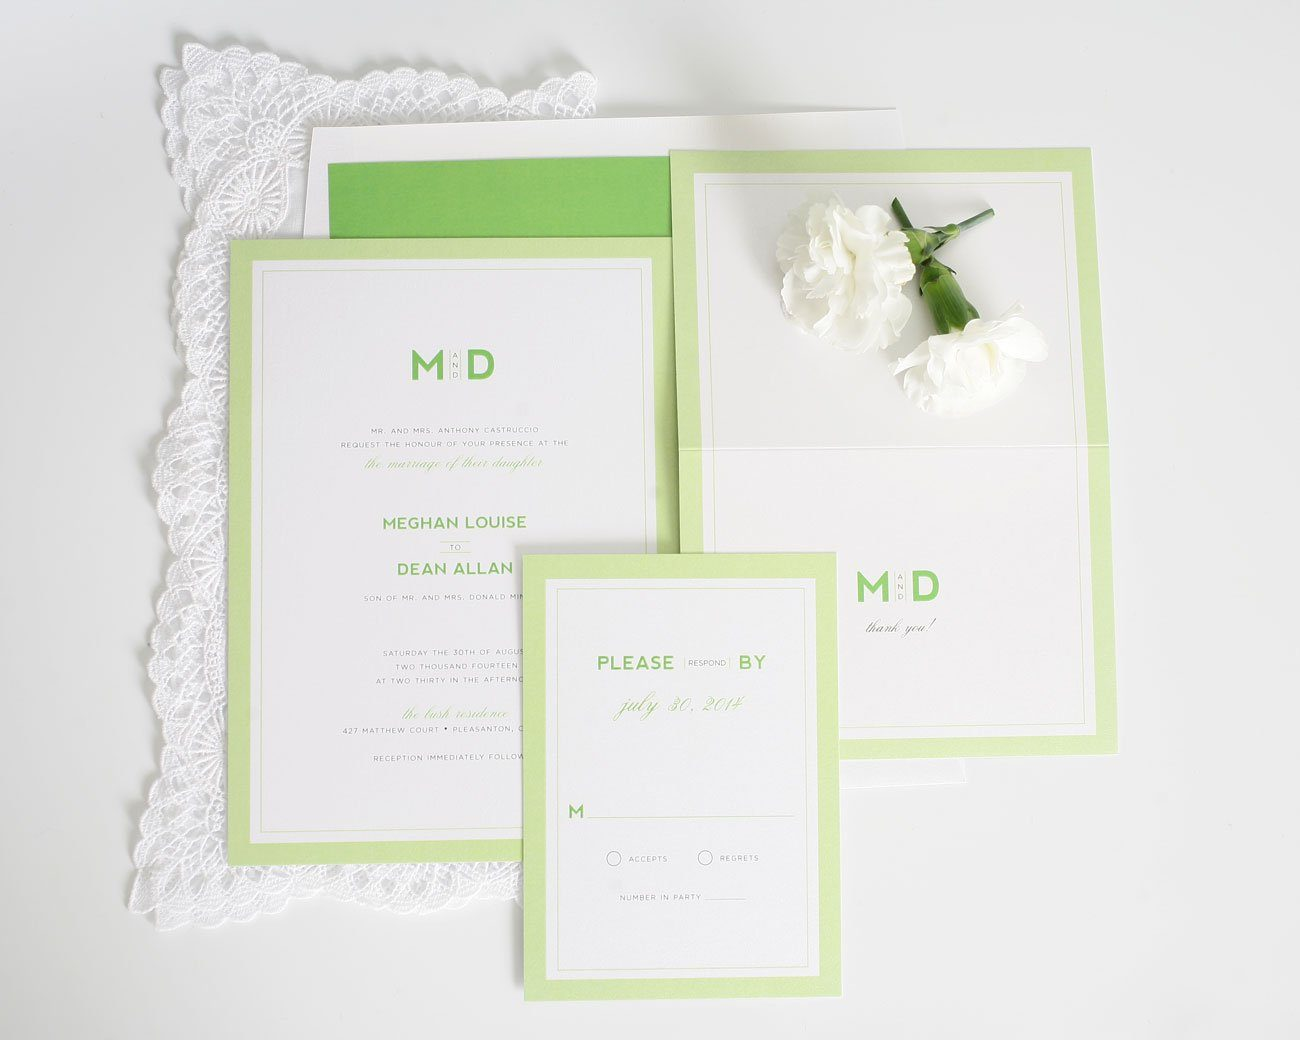 Modern Wedding Invitations With Borders